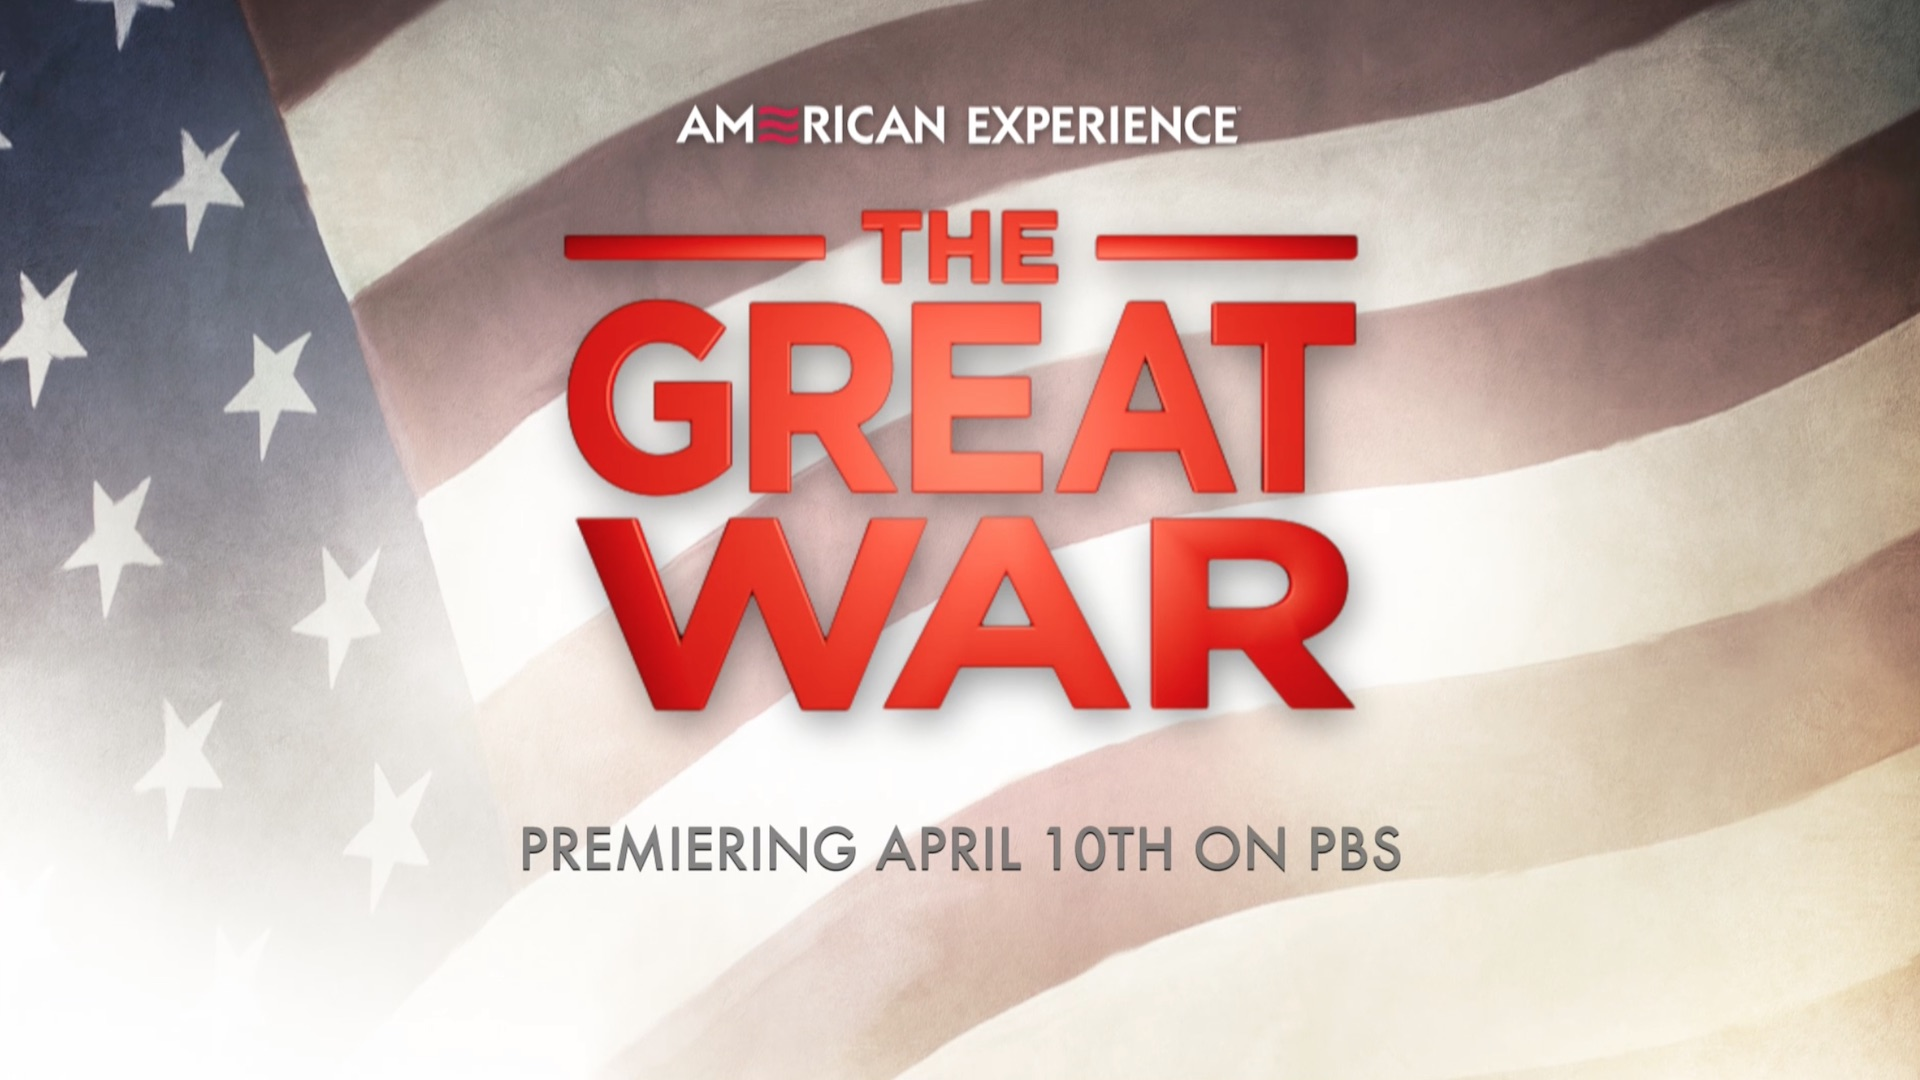 PBS marks this important moment in history with an intense three-part mini-series The Great War, looking at this country's involvement in the European ...